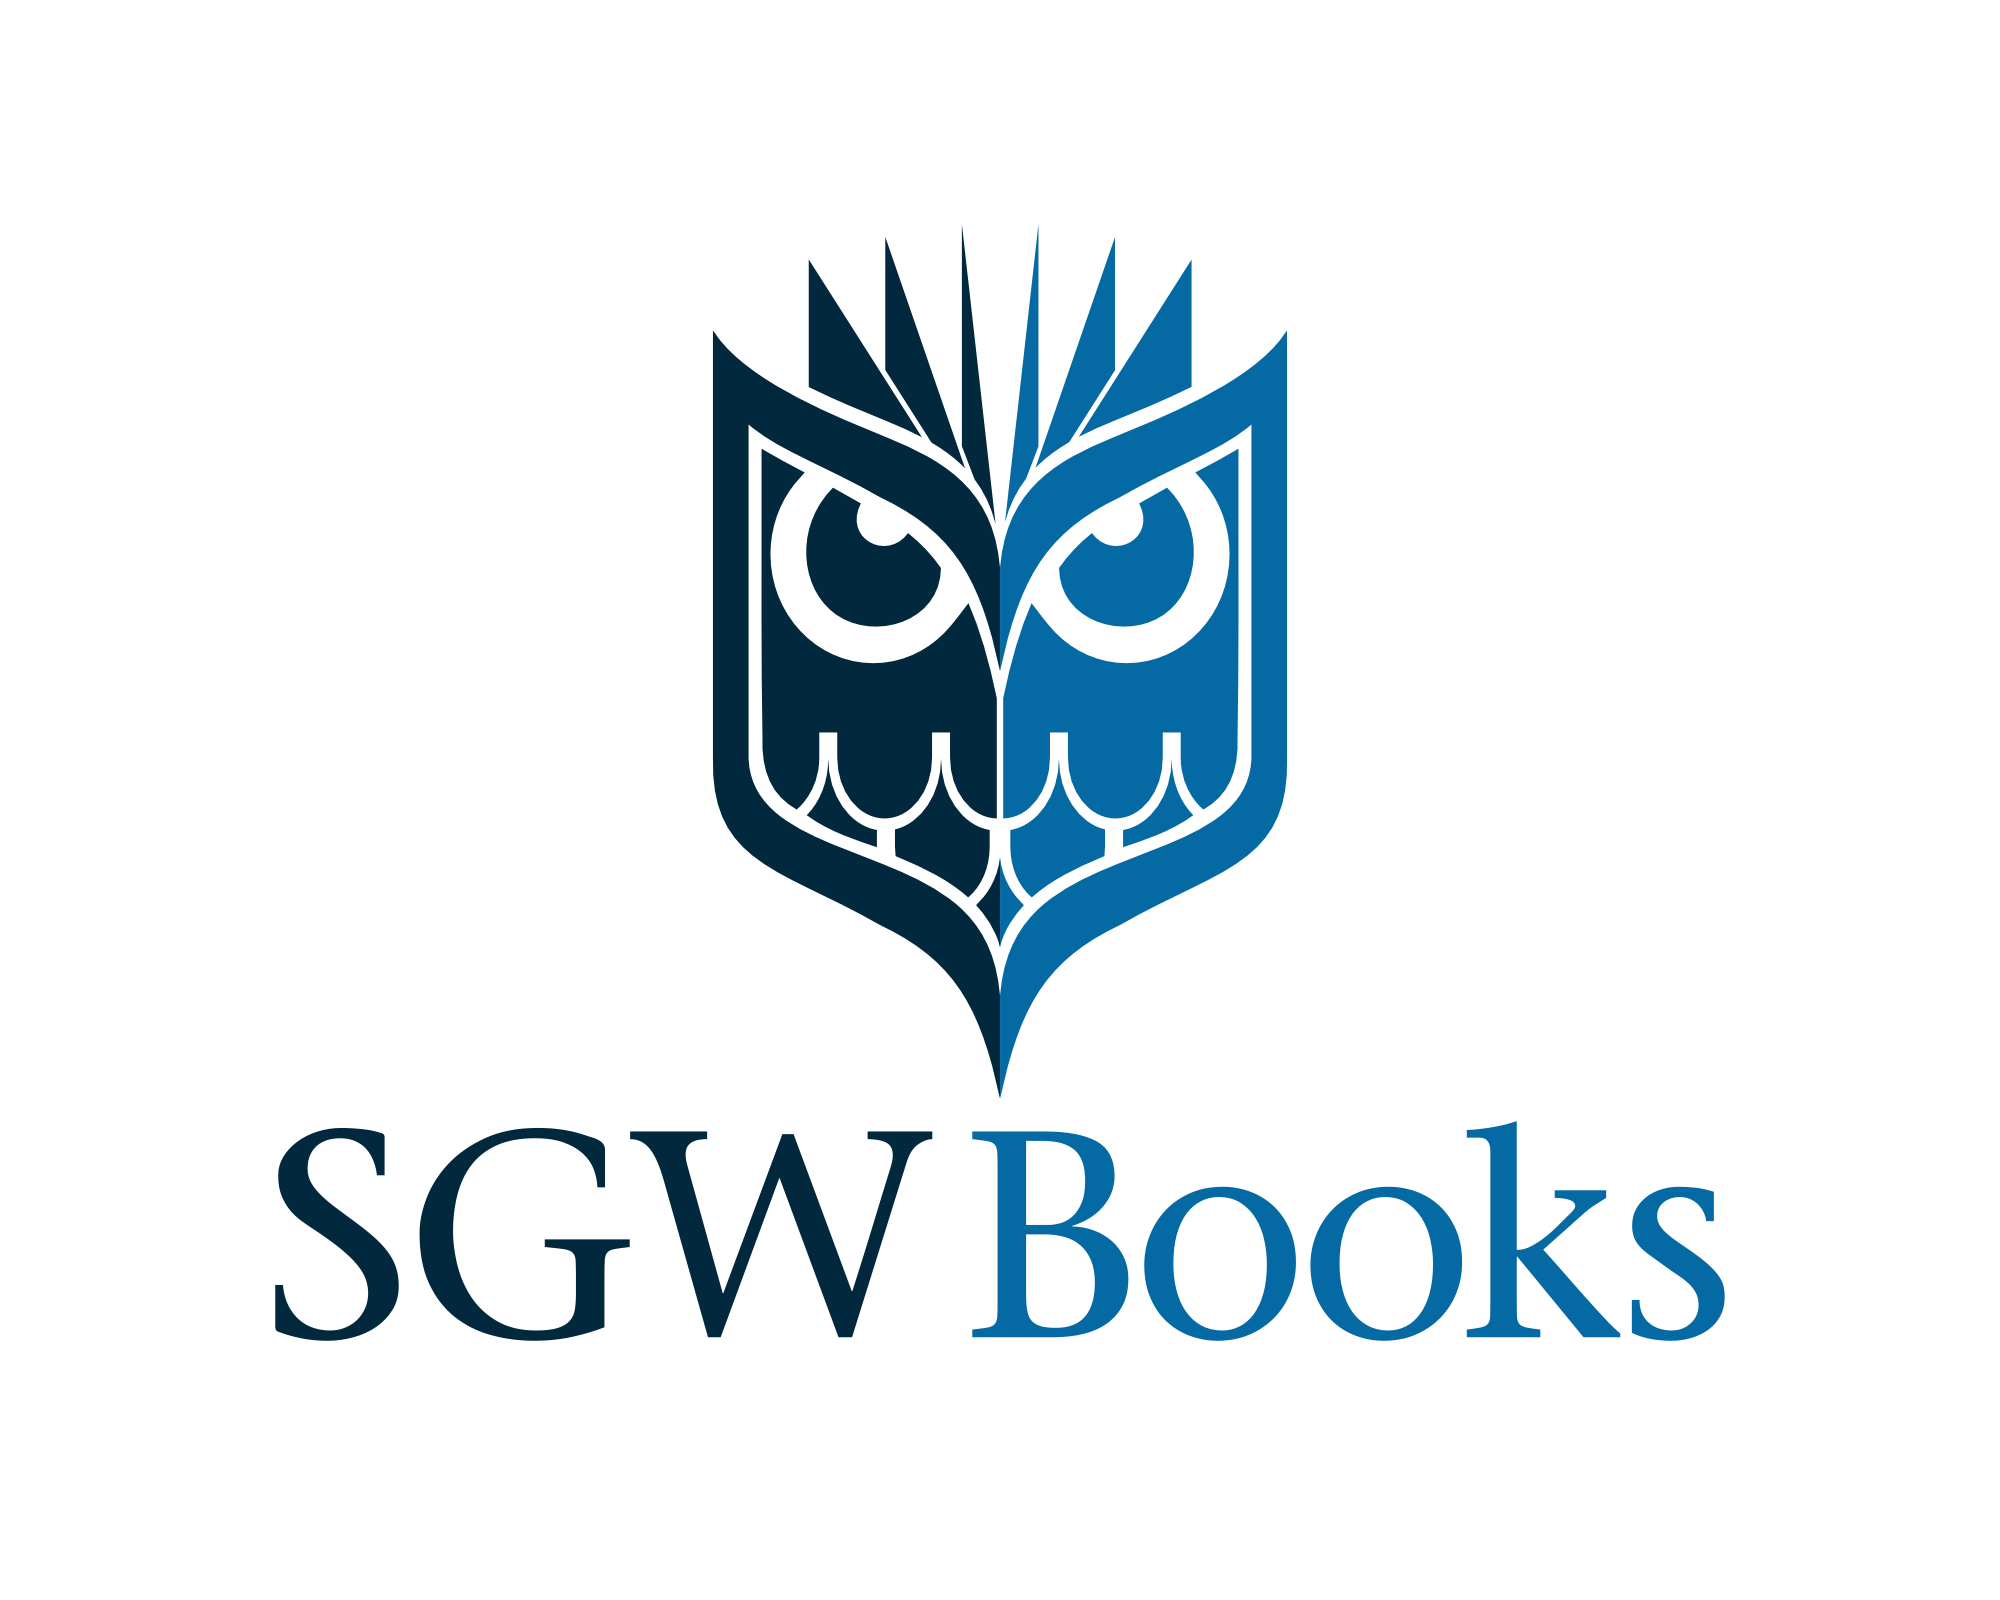 Logo Design by explogos - Entry No. 53 in the Logo Design Contest SGW Books Logo Design.